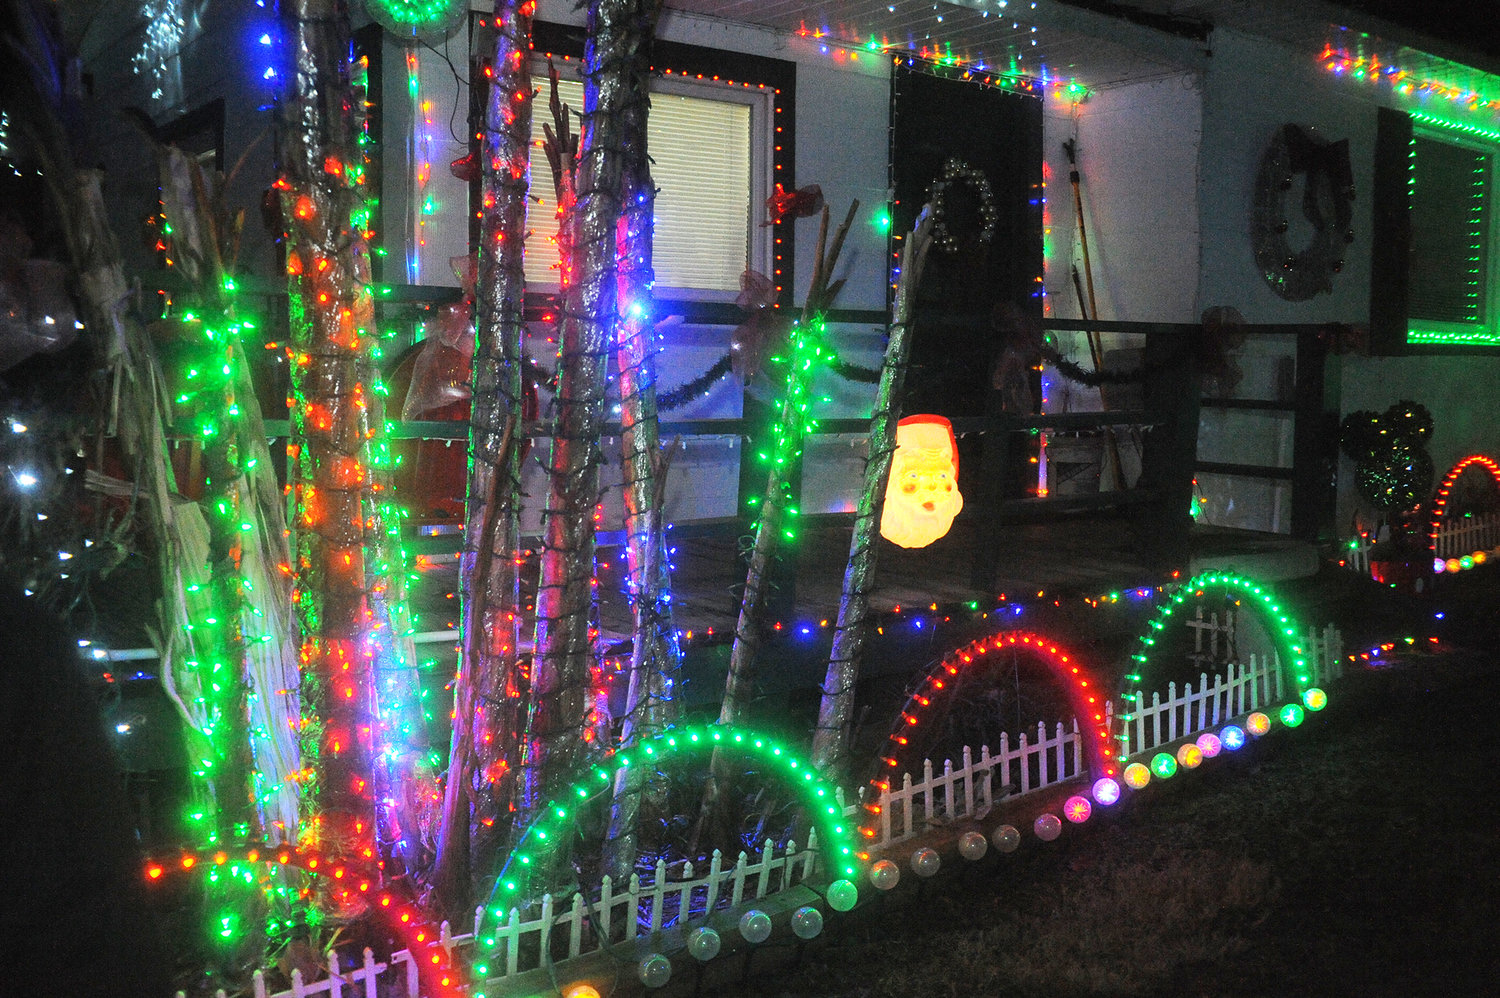 LED lights in circular arrays are bounded by strings of lights and vintage blow-mold lamps in a festive array around the Mace house on U.S. Hwy. 64. This year, the family estimates that 50,000 lights were used.